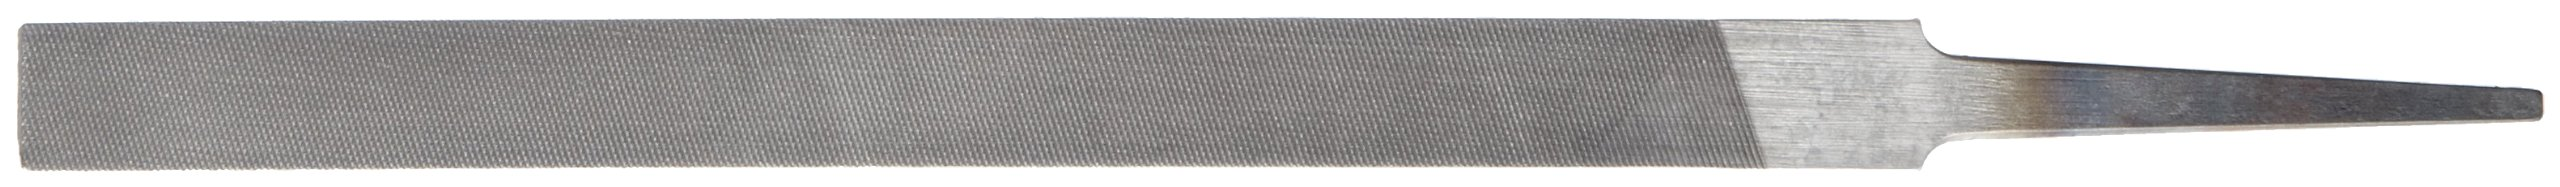 Nicholson Pillar File, Swiss Pattern, Double Cut, Rectangular, #0 Coarseness, 6'' Length